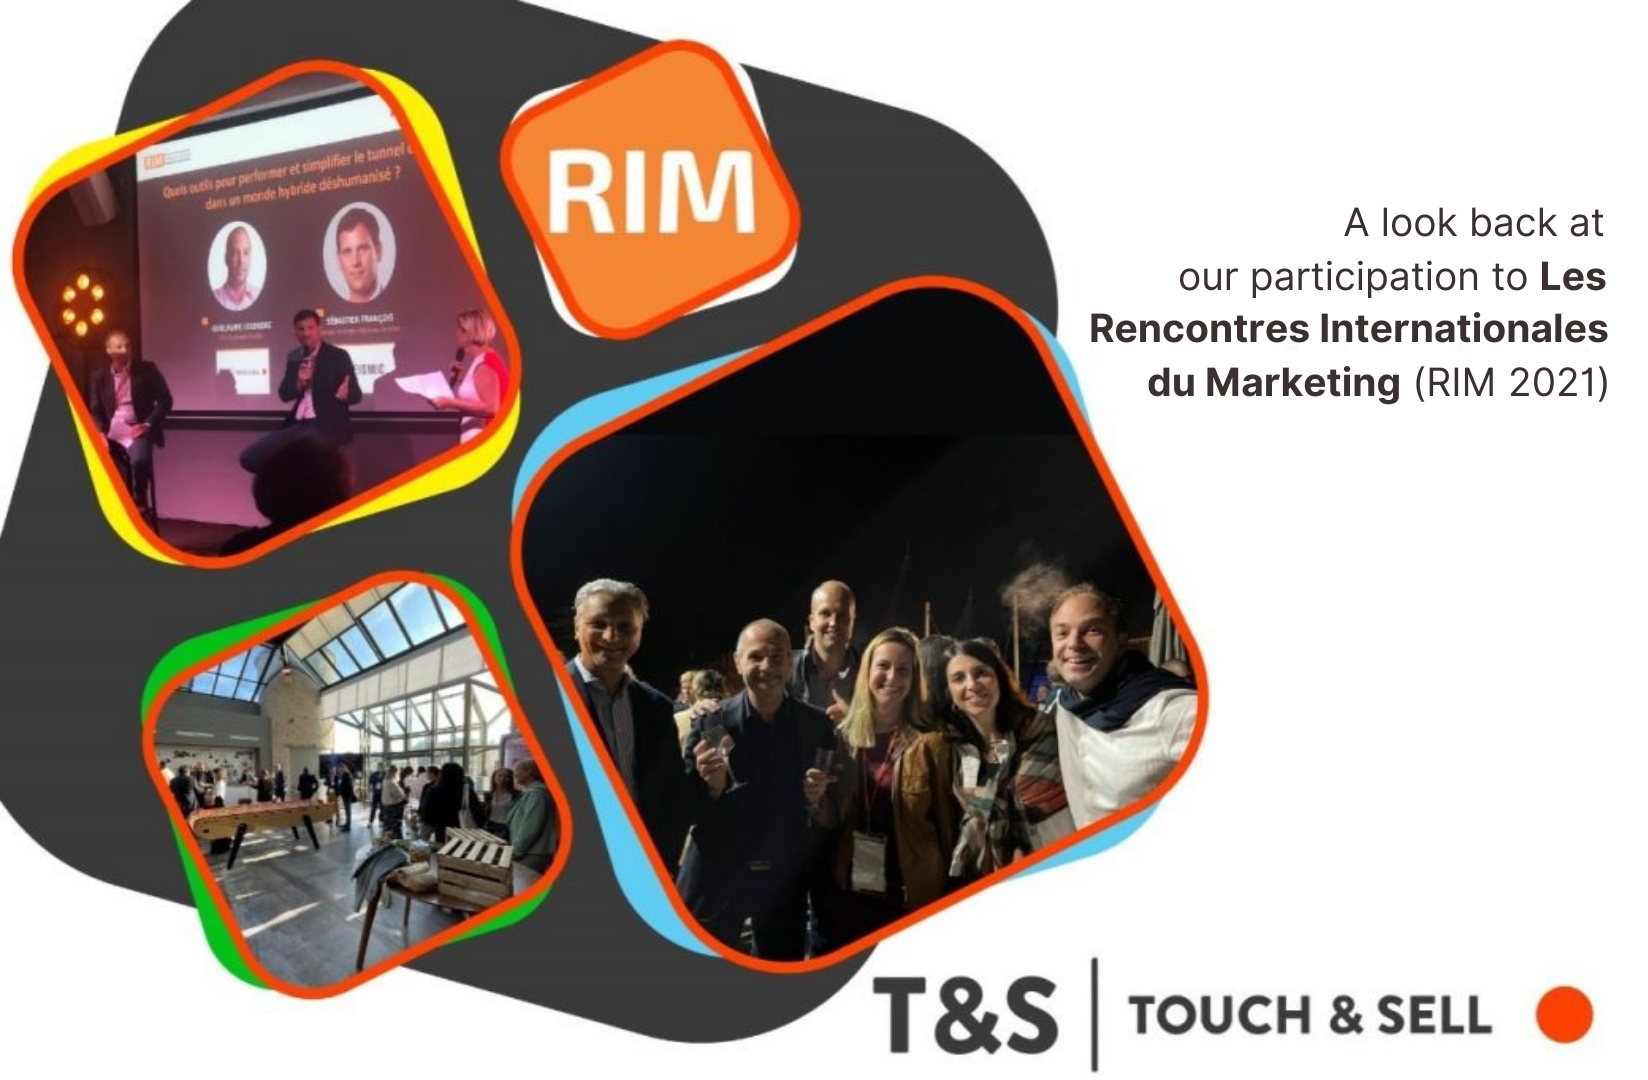 A look back at our participation to Les Rencontres Internationales du Marketing (RIM 2021)